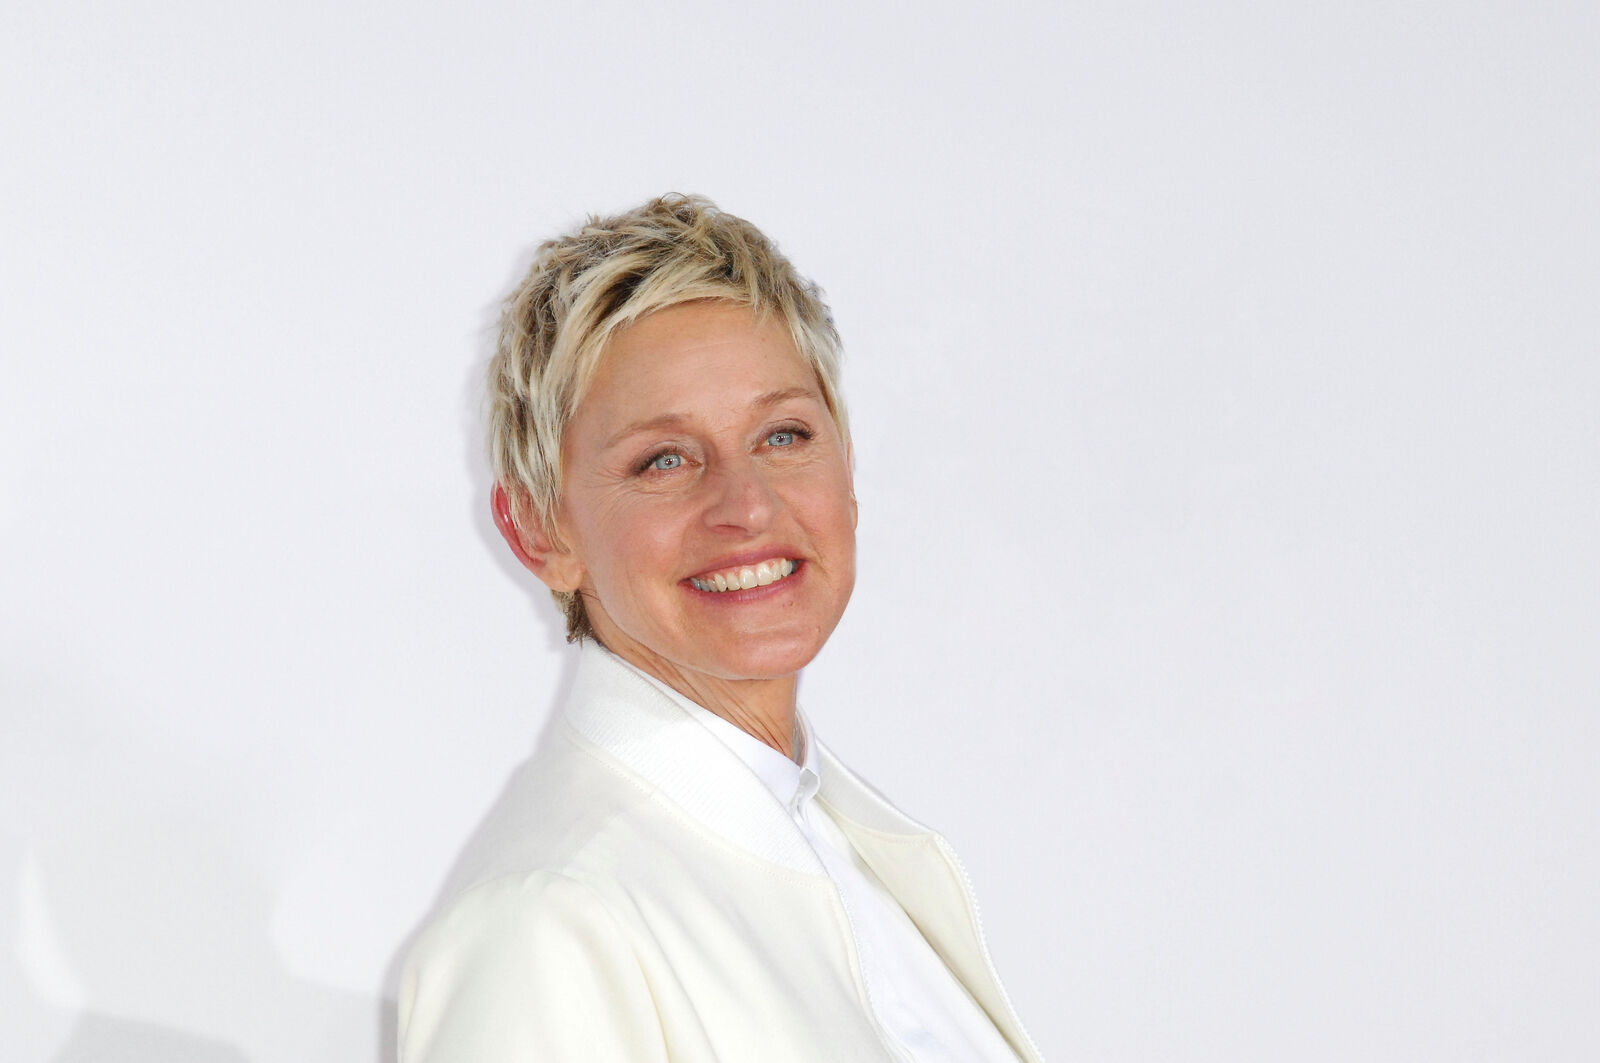 ellen degeneres tickets ellen degeneres tour dates on stubhub. Black Bedroom Furniture Sets. Home Design Ideas